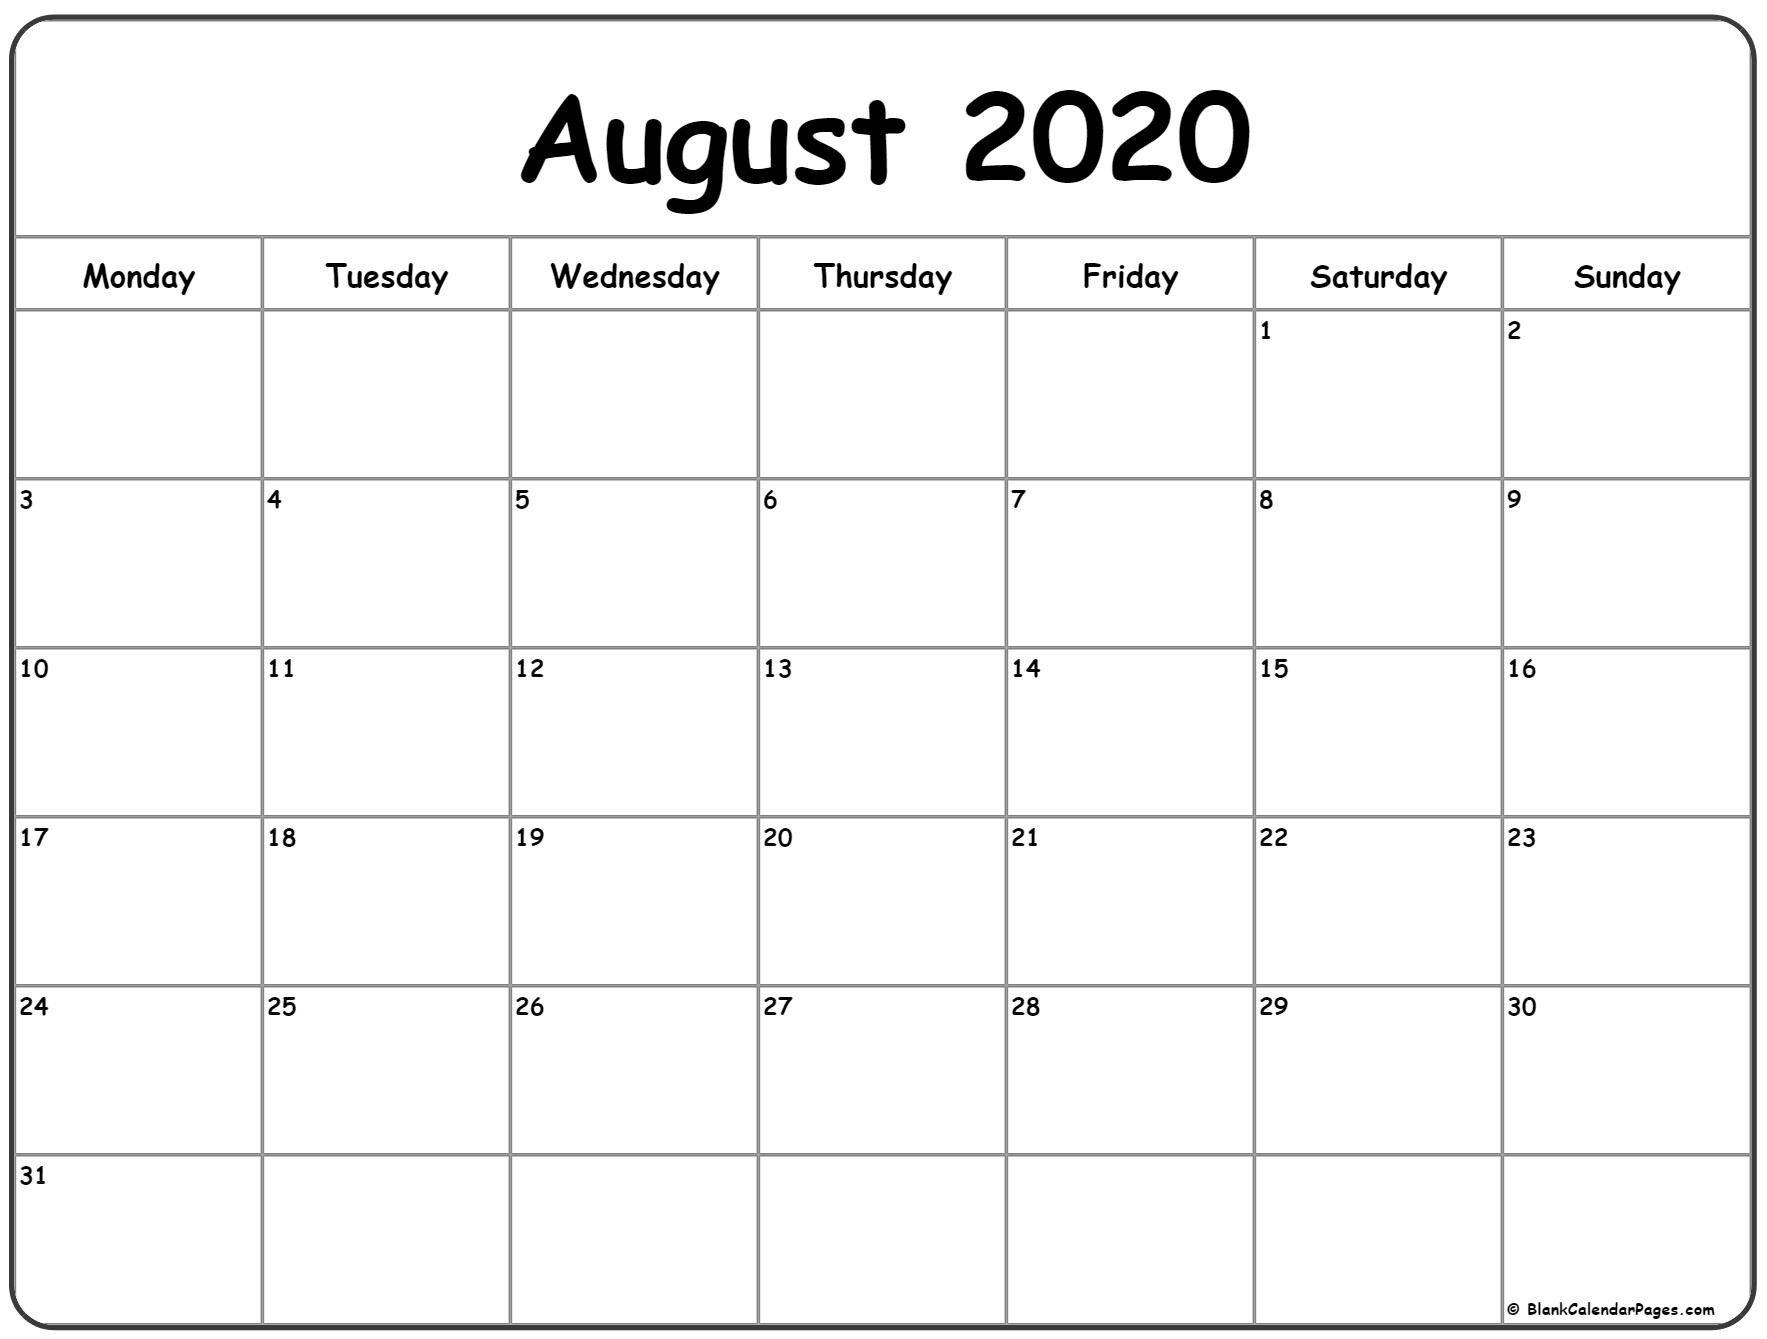 August 2020 Monday Calendar | Monday To Sunday-Blank Calendar For August 2020/monday-Friday